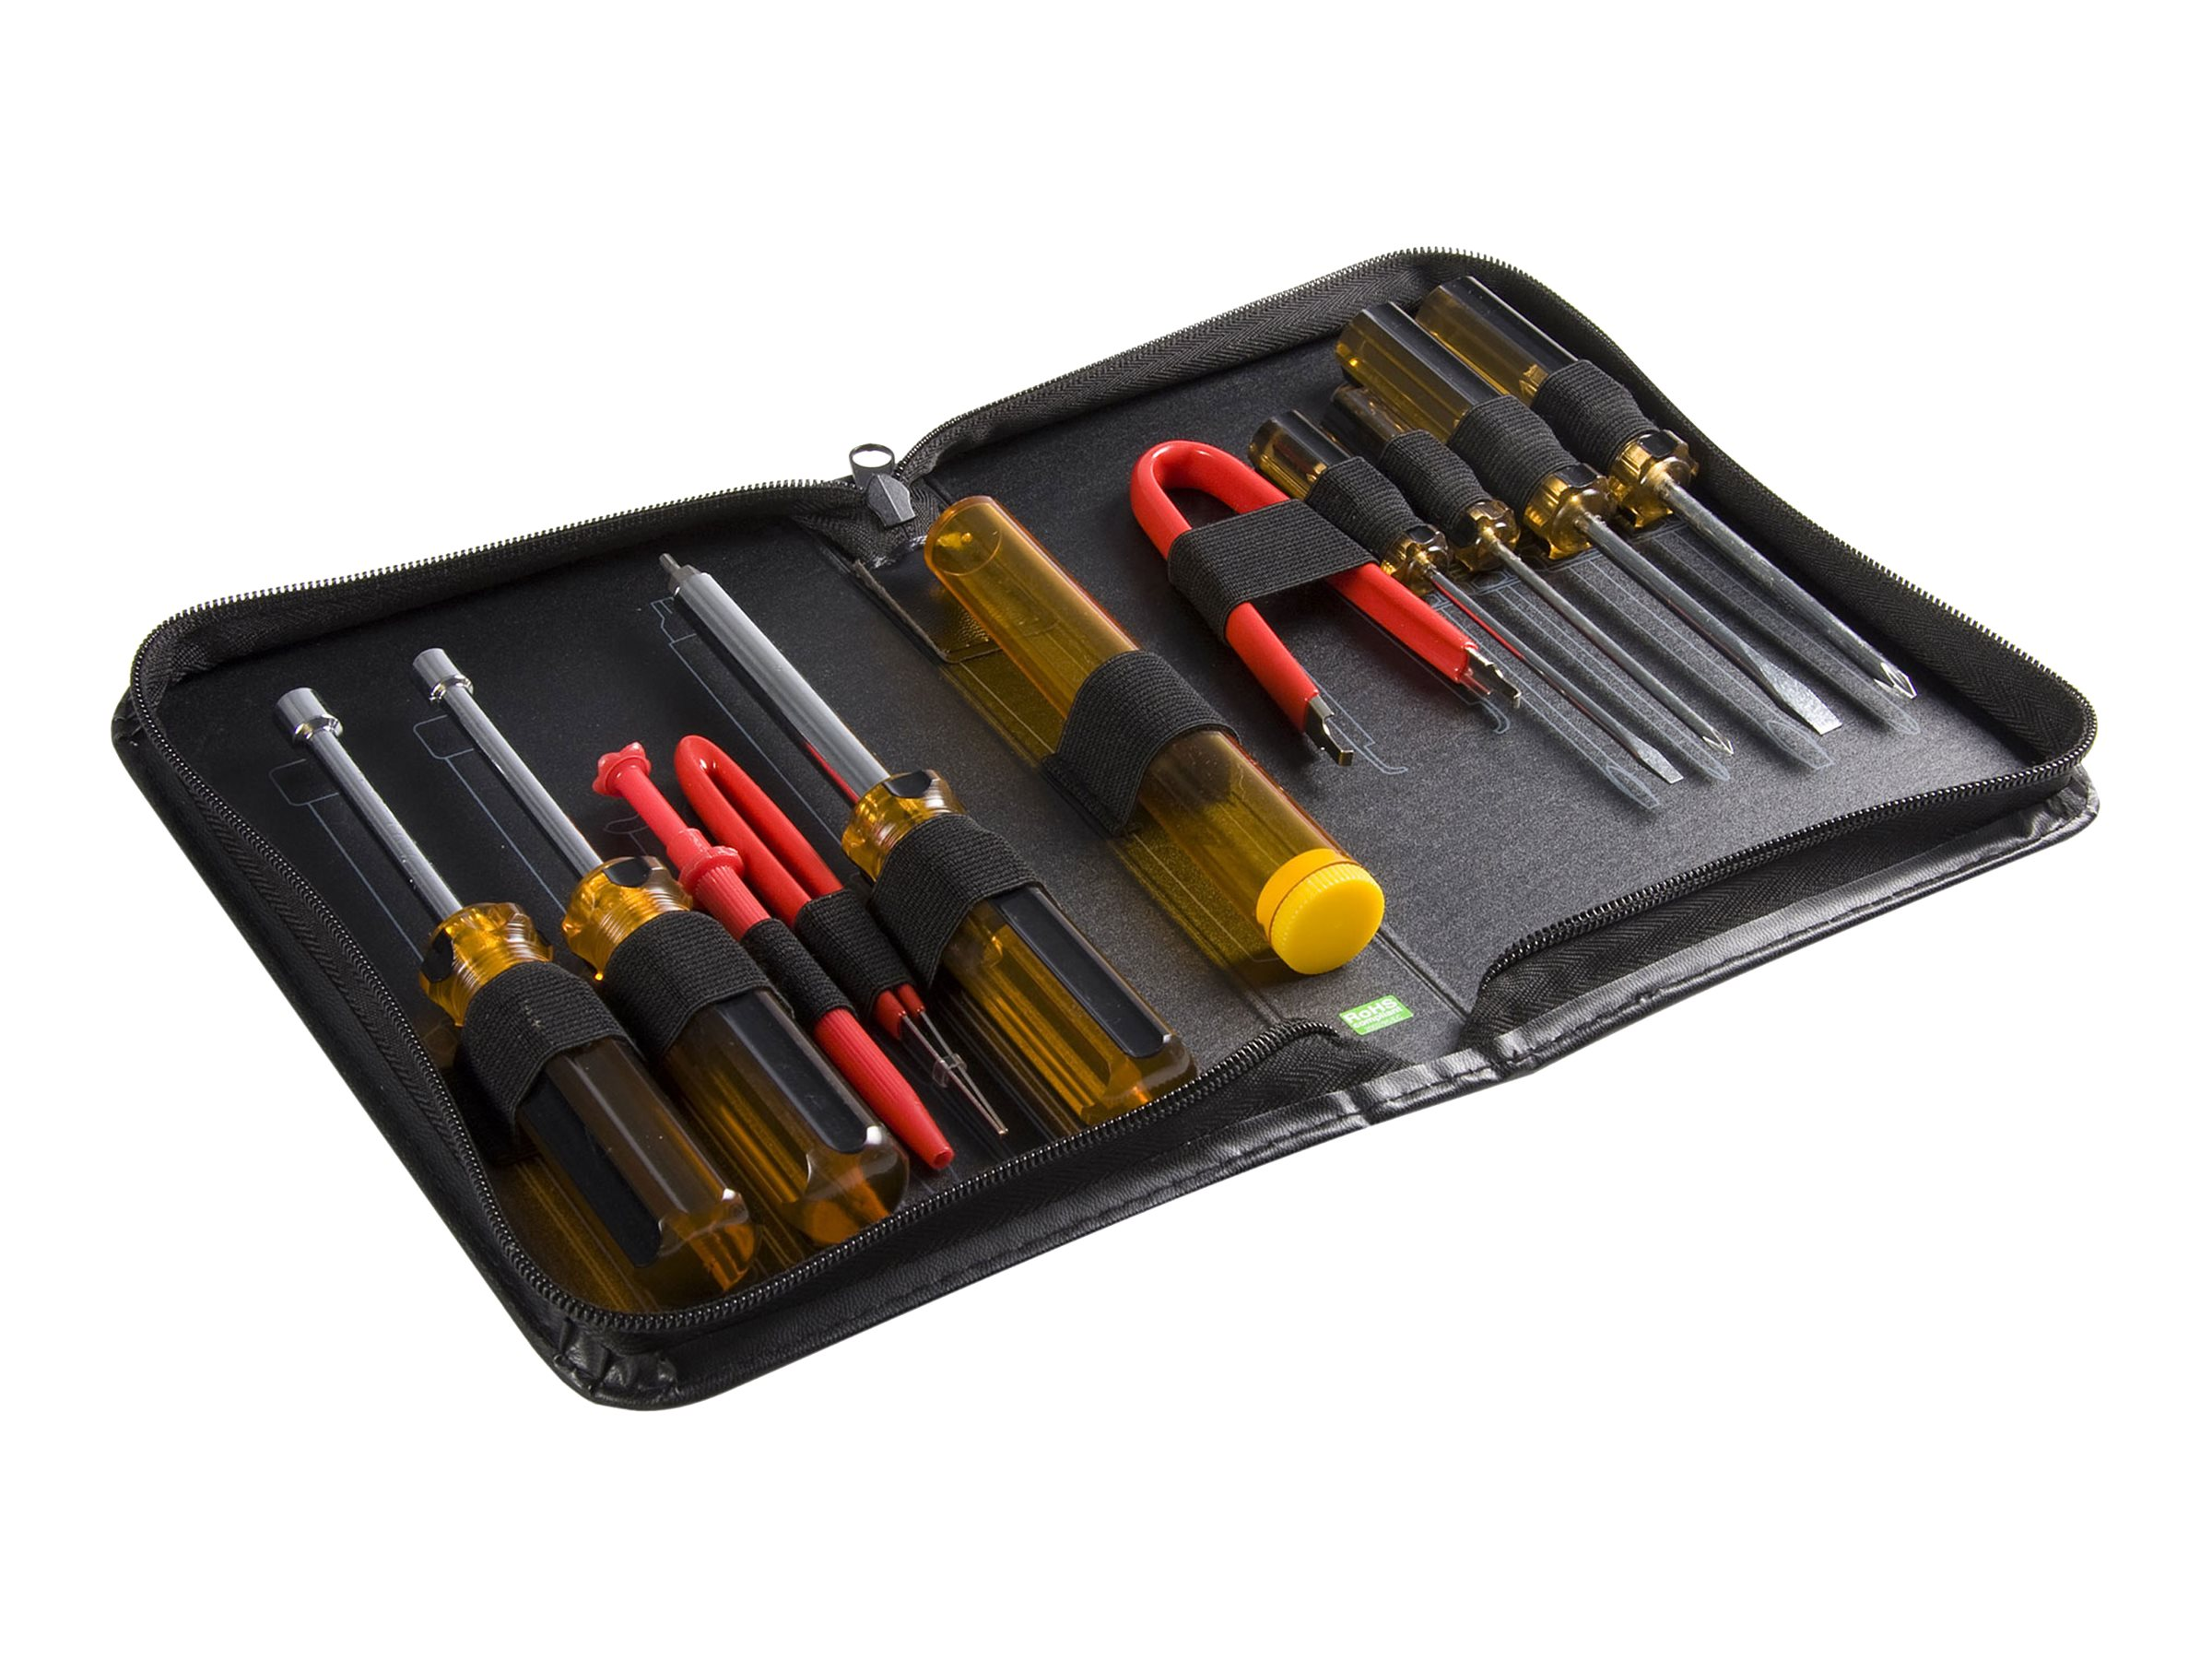 StarTech.com 11 Piece Computer Tool Kit - PC Repair Tool Kit with Zippered Vinyl Carrying Case (CTK200) tool kit